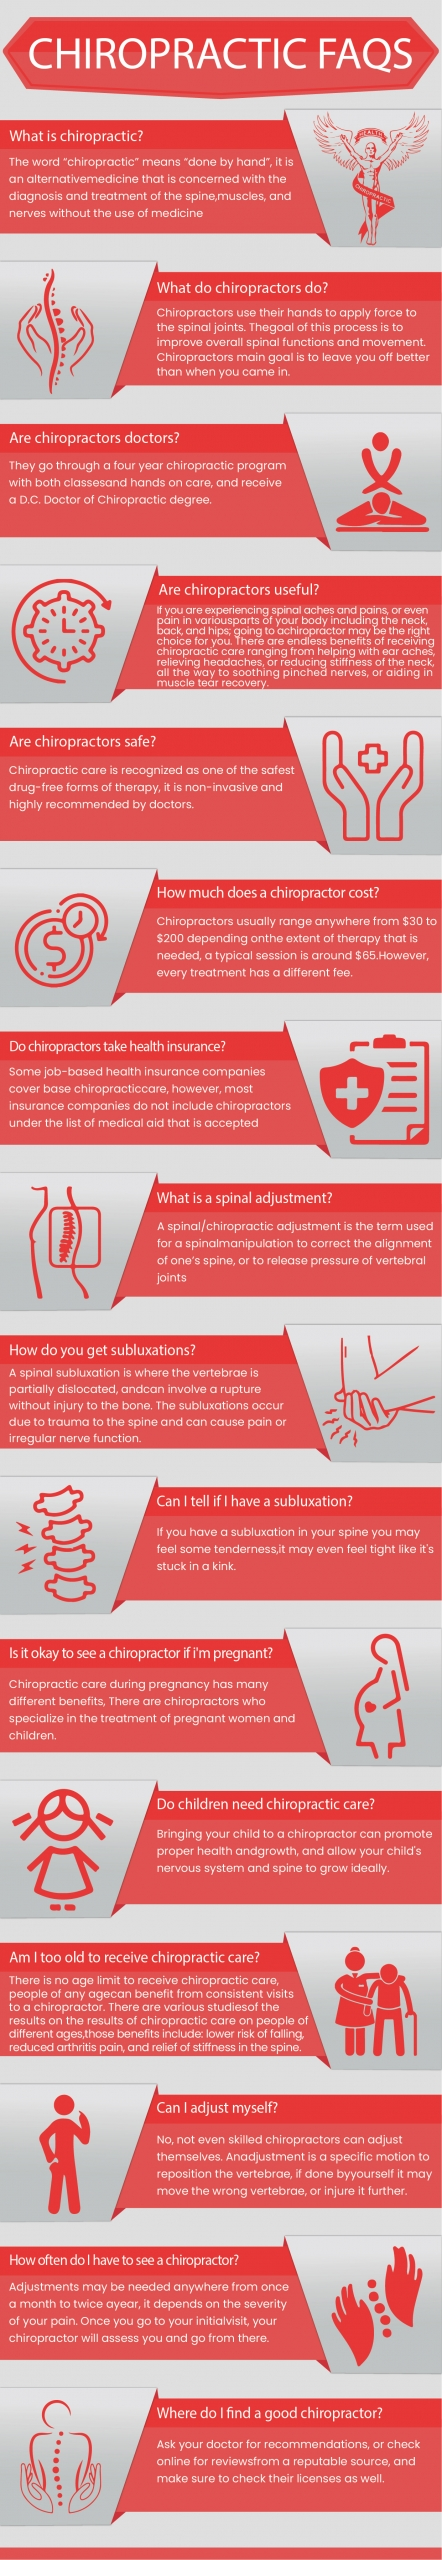 Infographic that answers common chiropractic FAQs